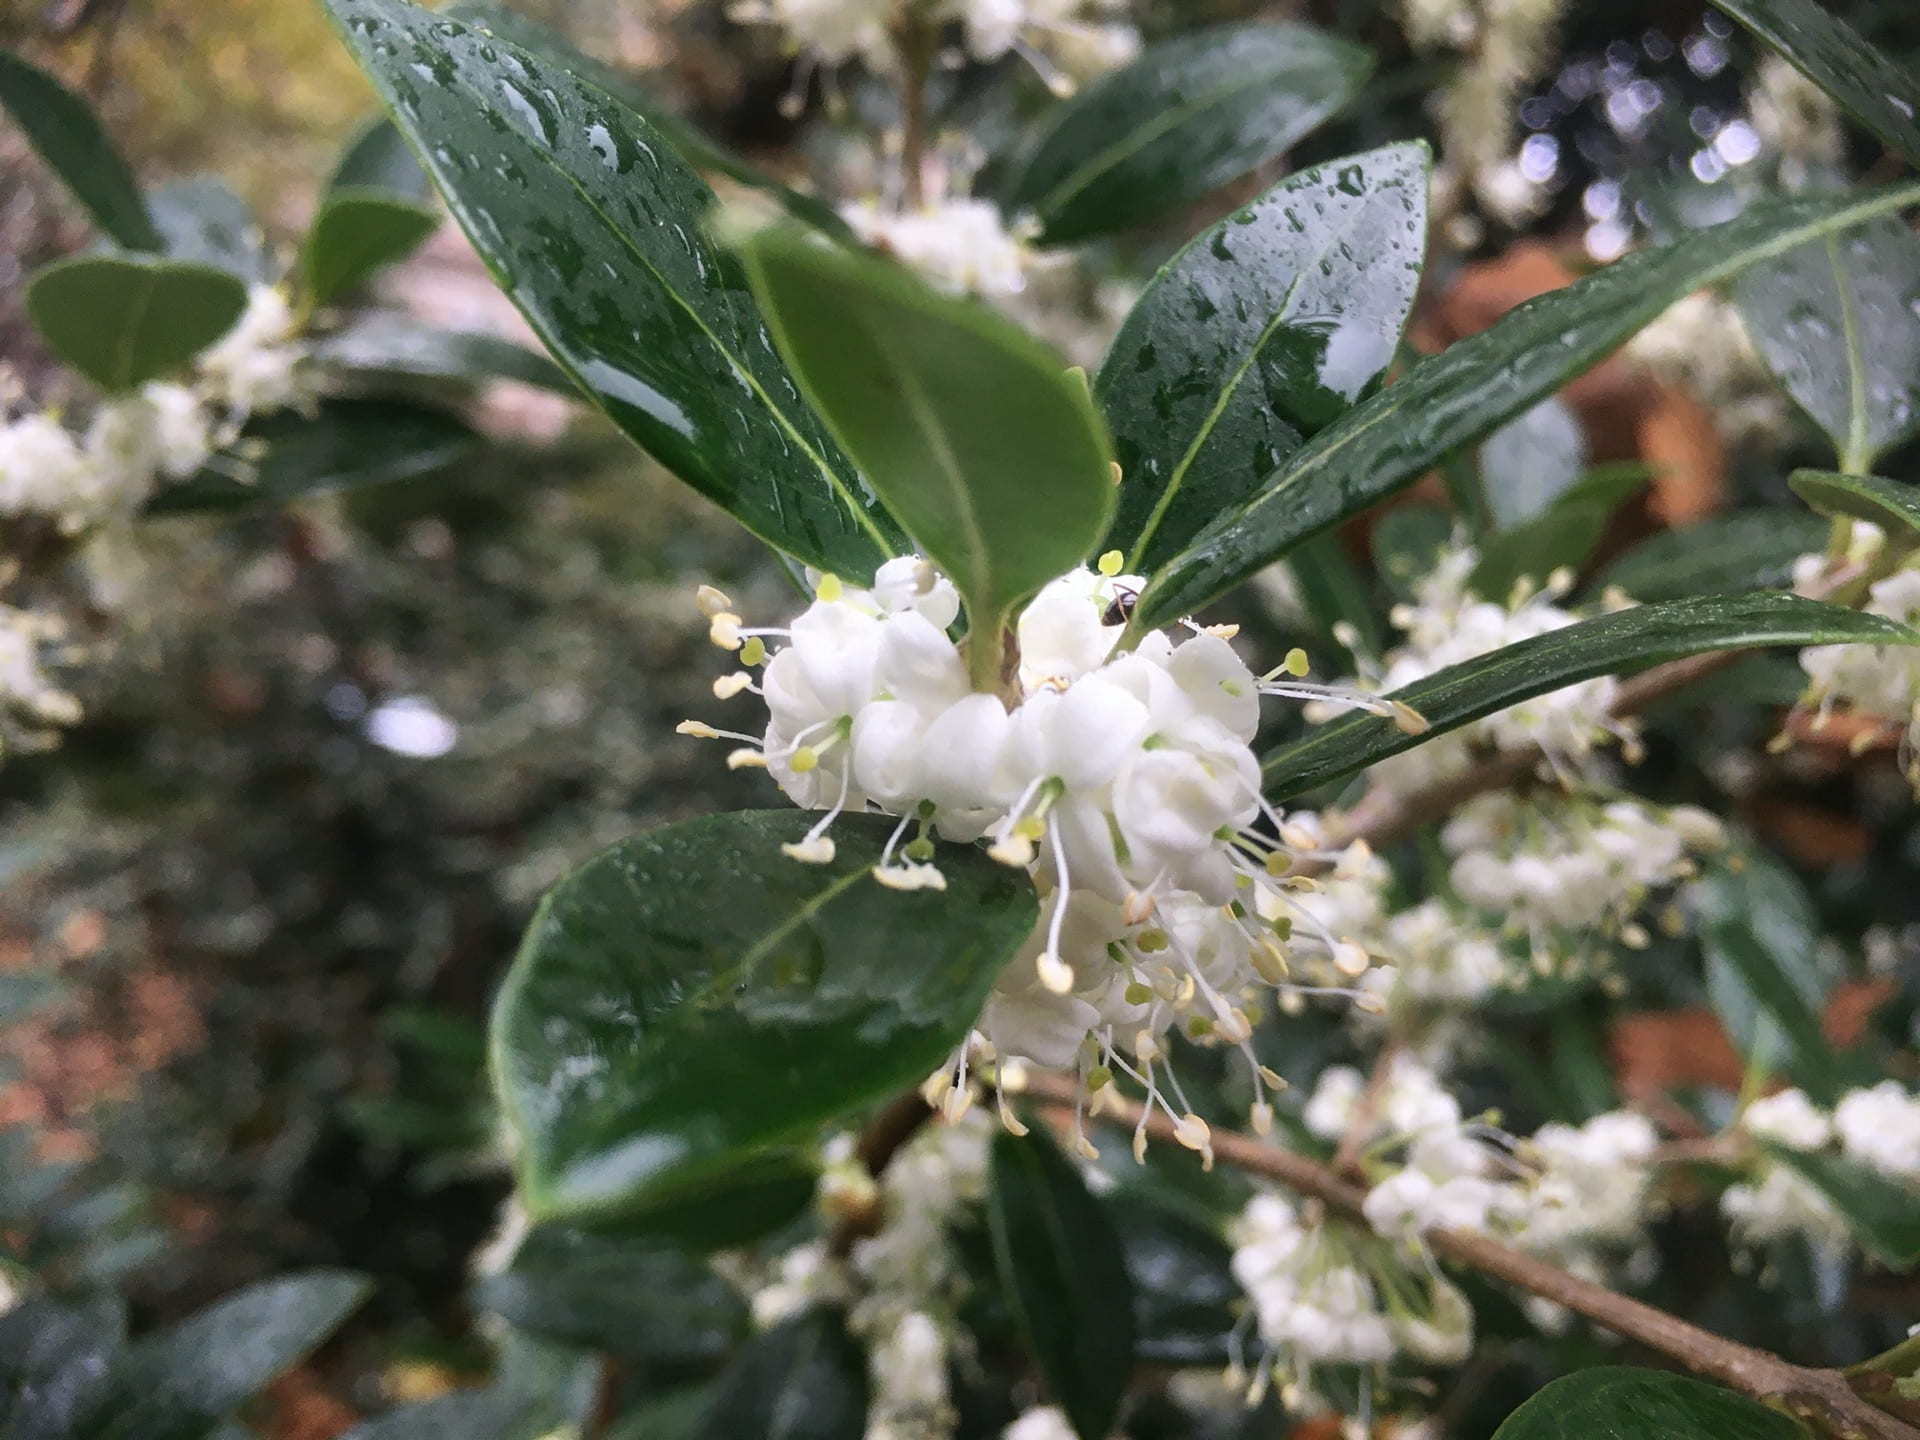 Don't judge a plant by its flowers, these small blooms of Osmanthus heterophyllus are the most fragrant in the park.